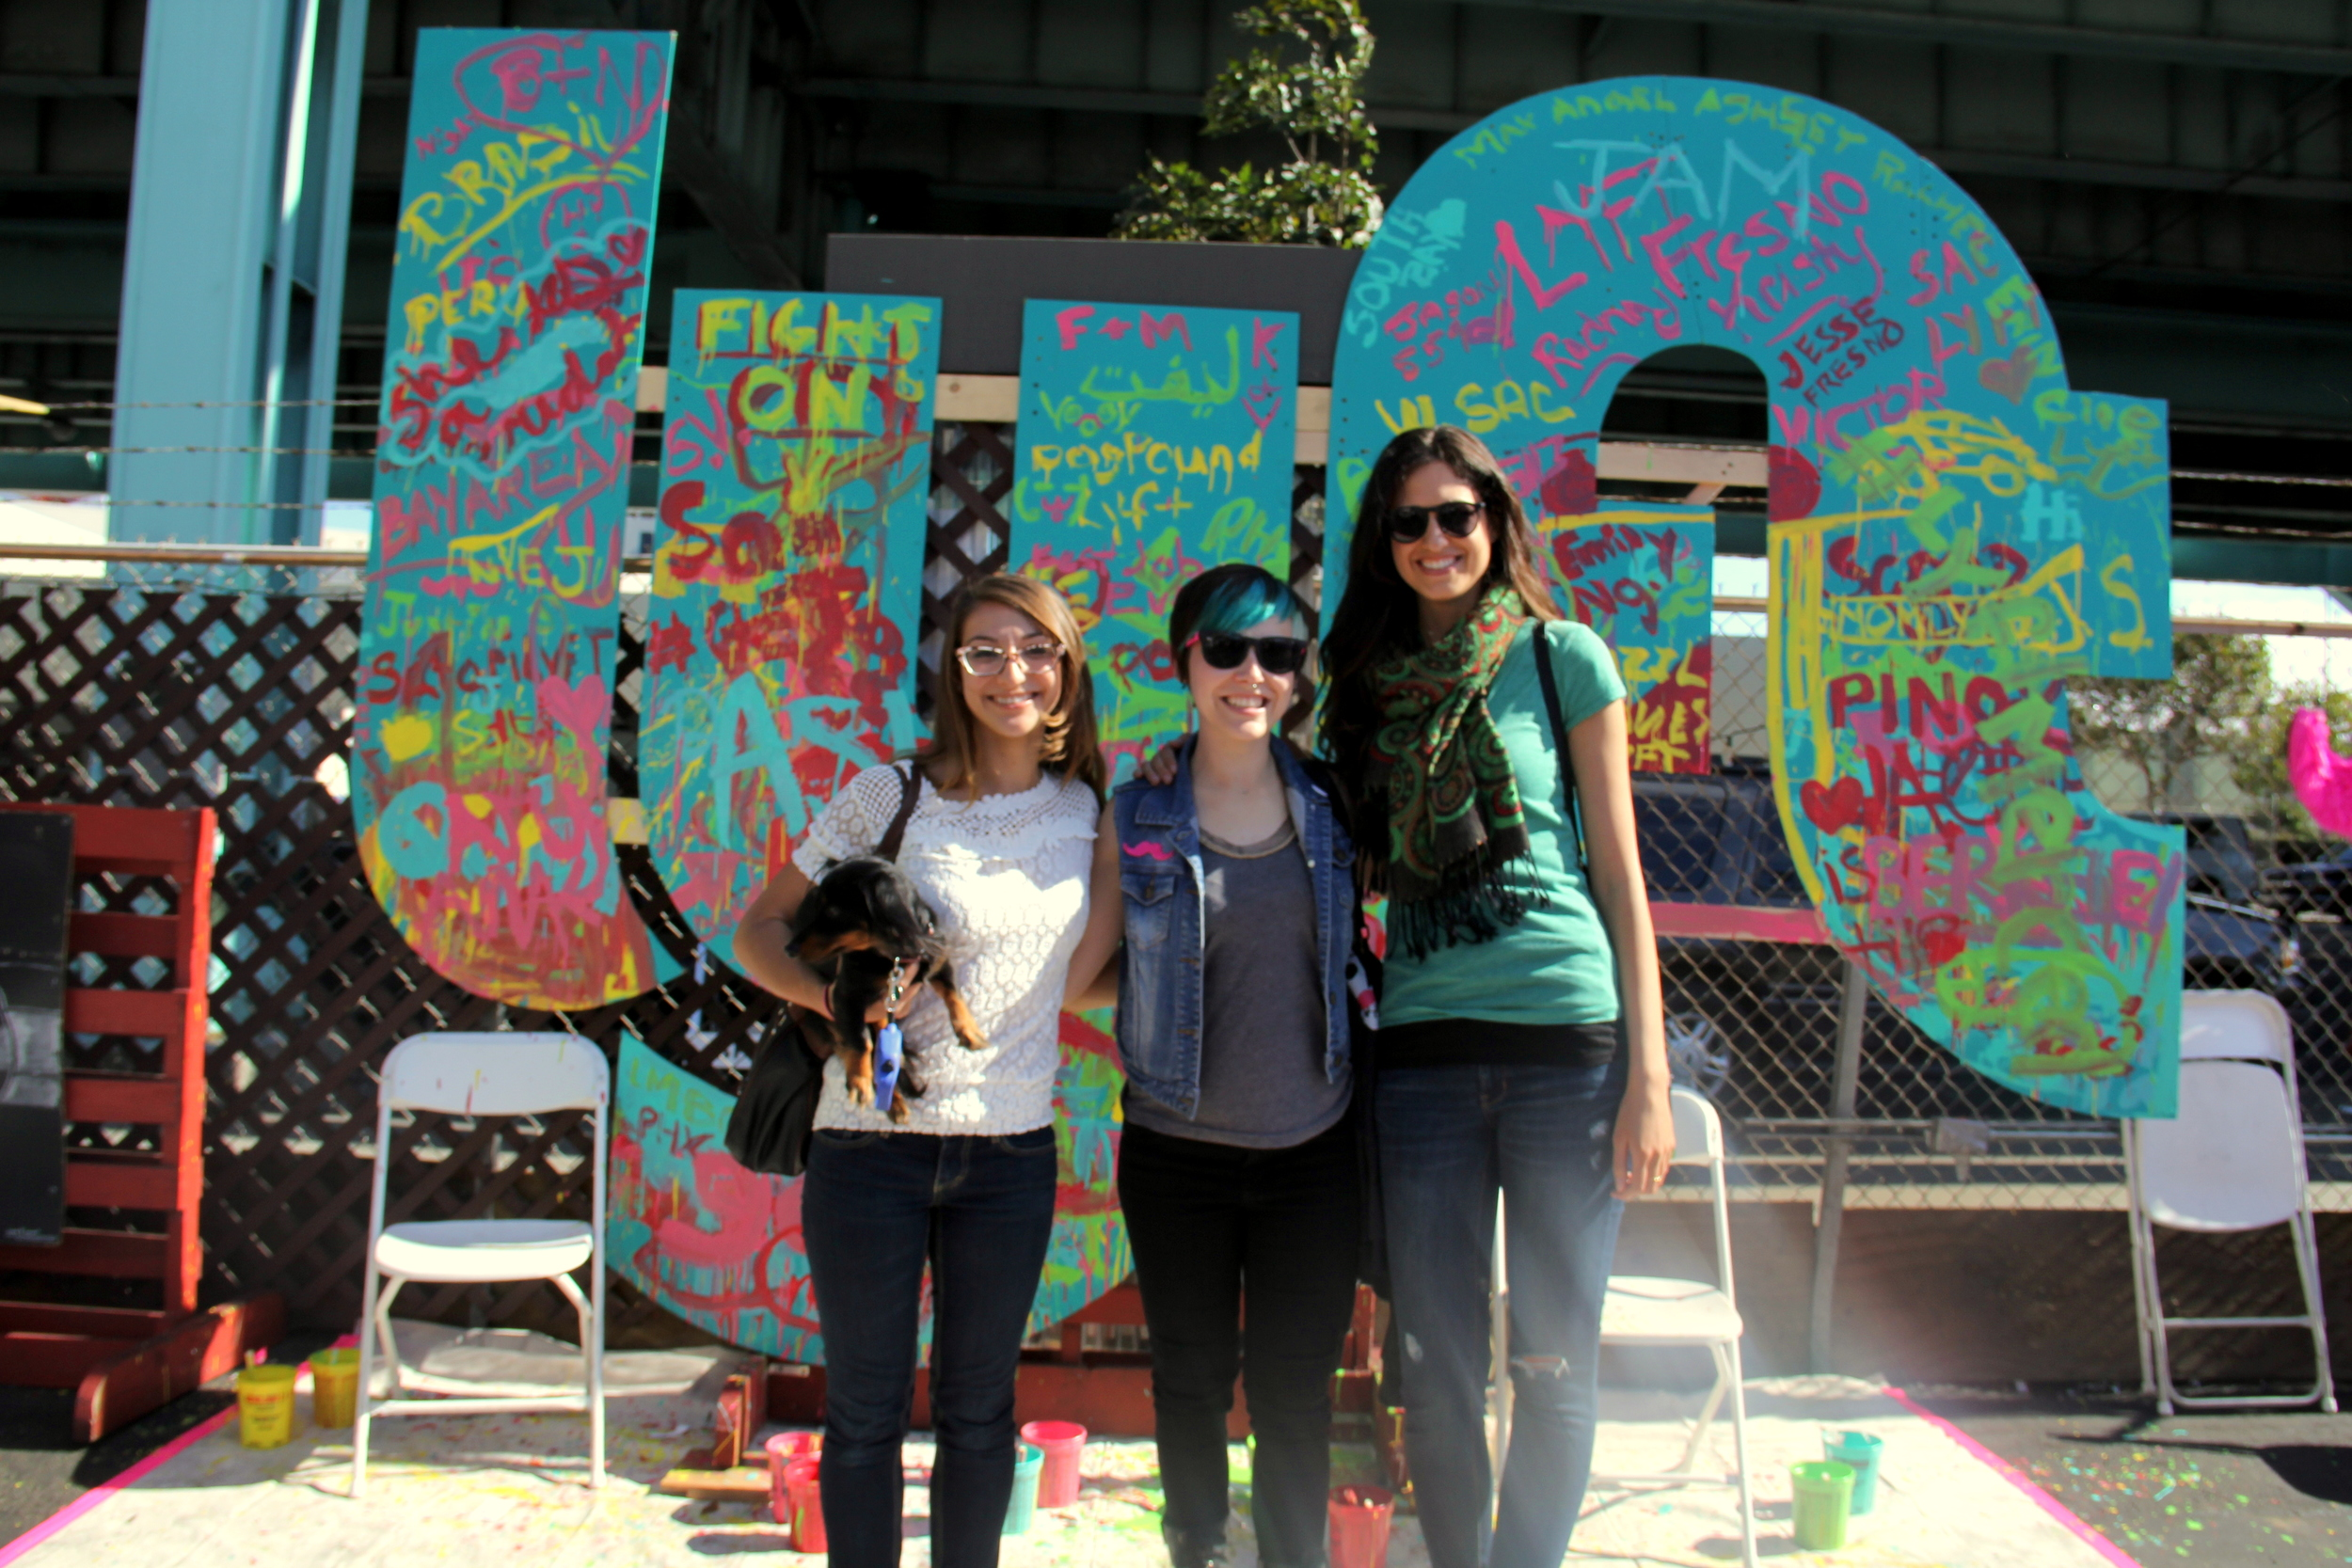 Artistic attendees were invited to get their hands dirty on a gigantic model of the Lyft logo.